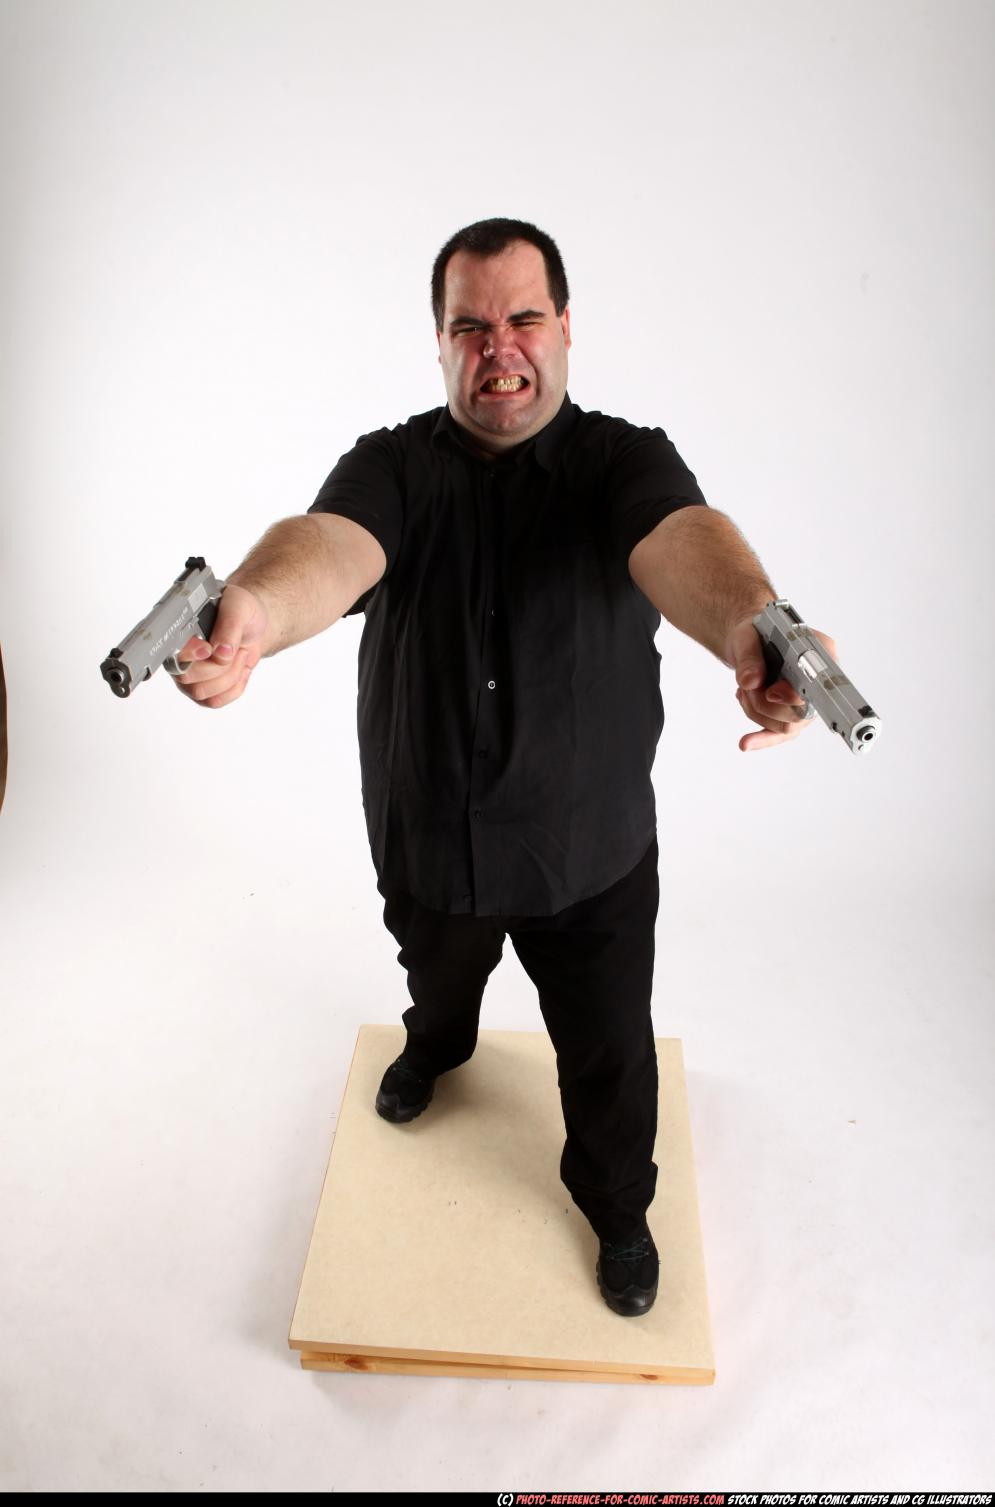 Image from Comic Artist - Furious Mobster Shooting Dual Guns - 226332012_06_mobster_dual_guns_pose4_00_a.jpg